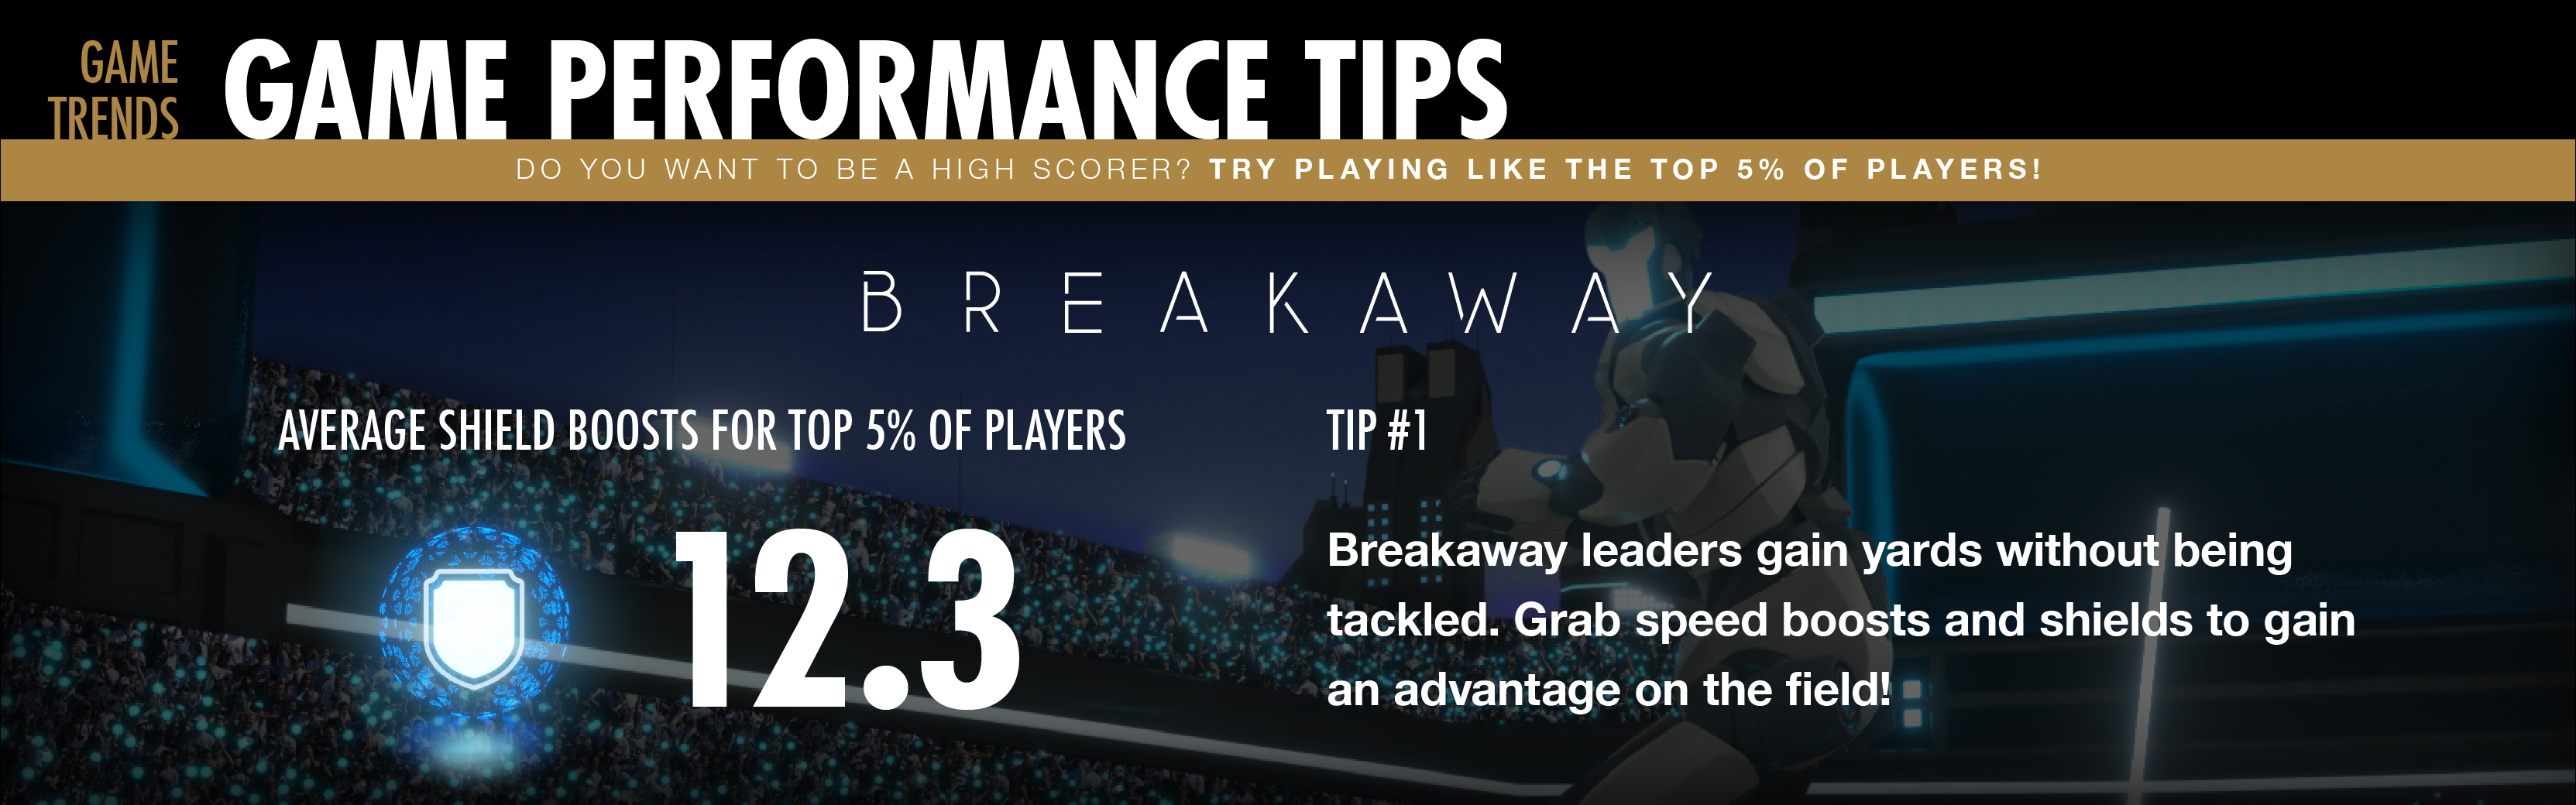 Game Performance Tips